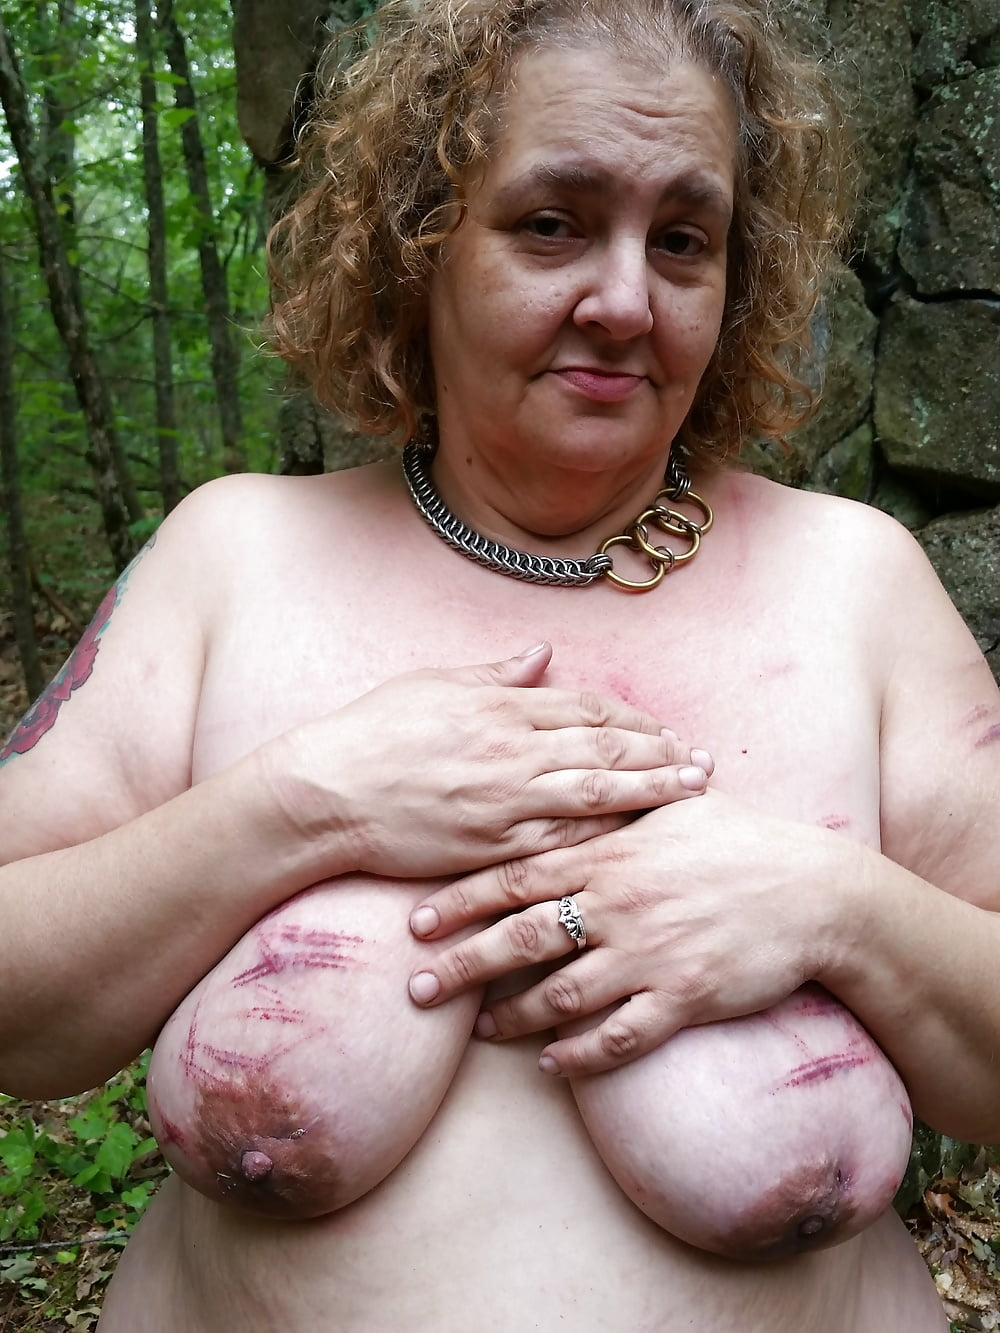 slut-in-woods